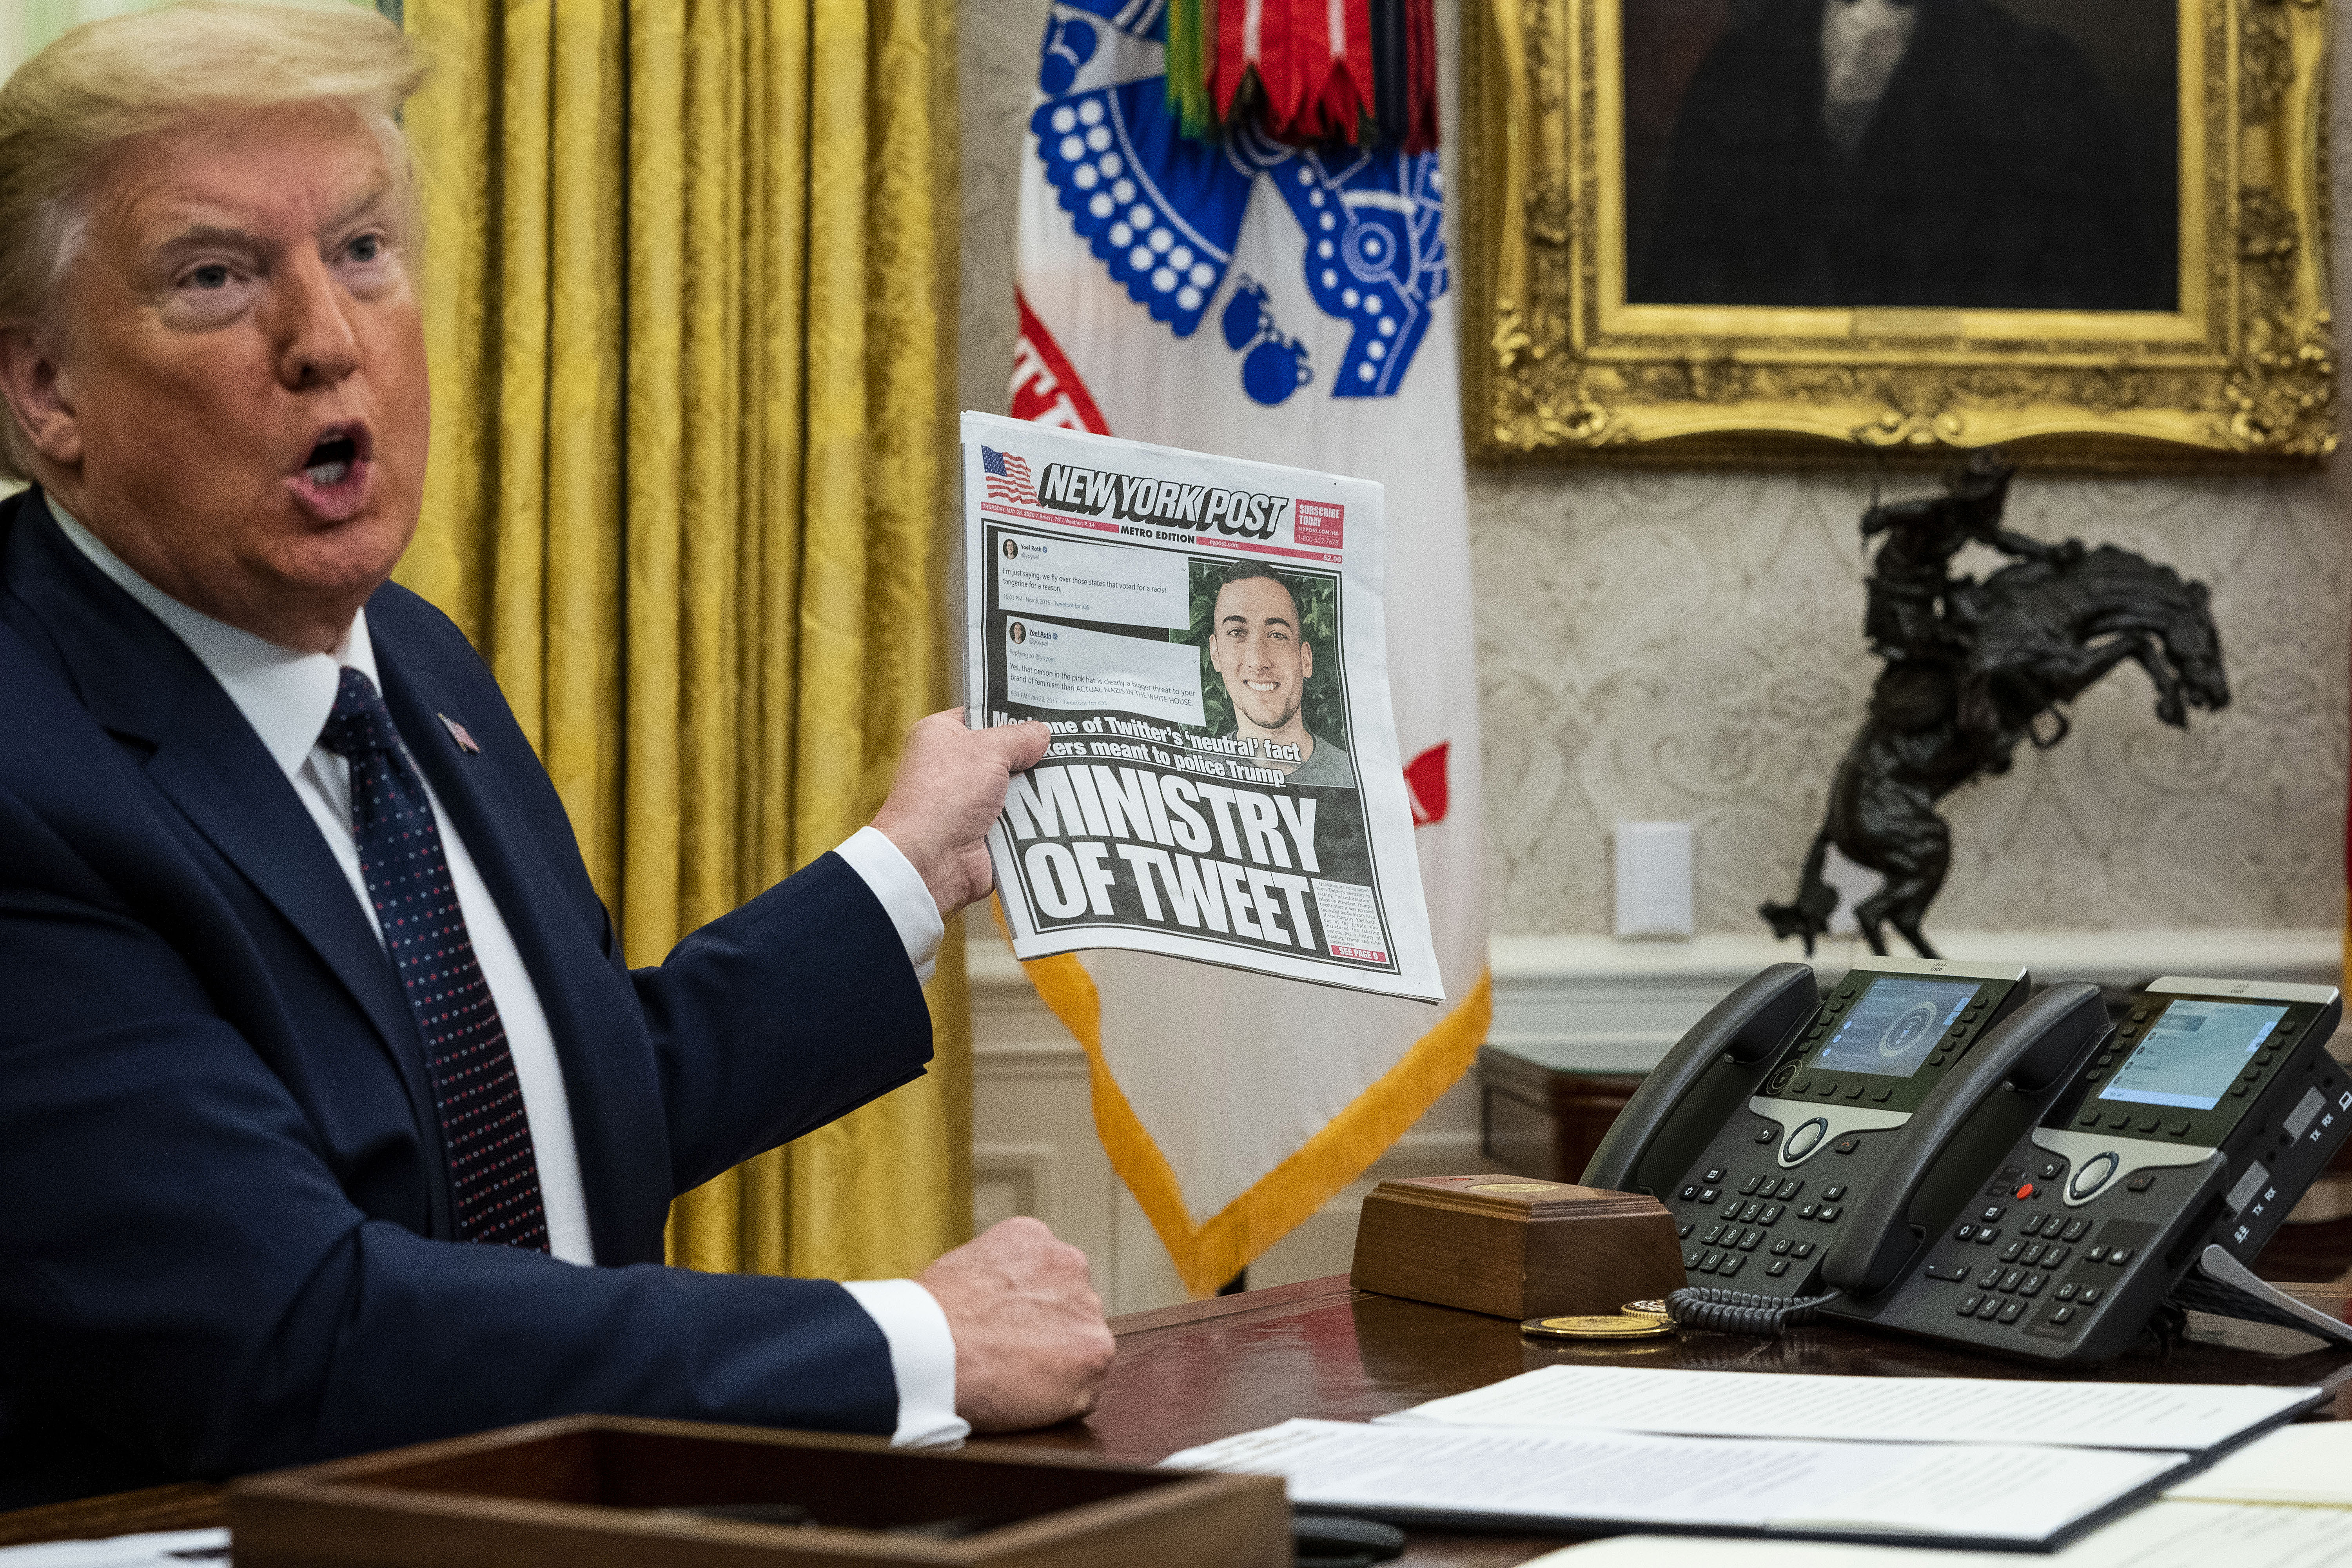 Trump sits at his desk holding up a copy of the New York Post.